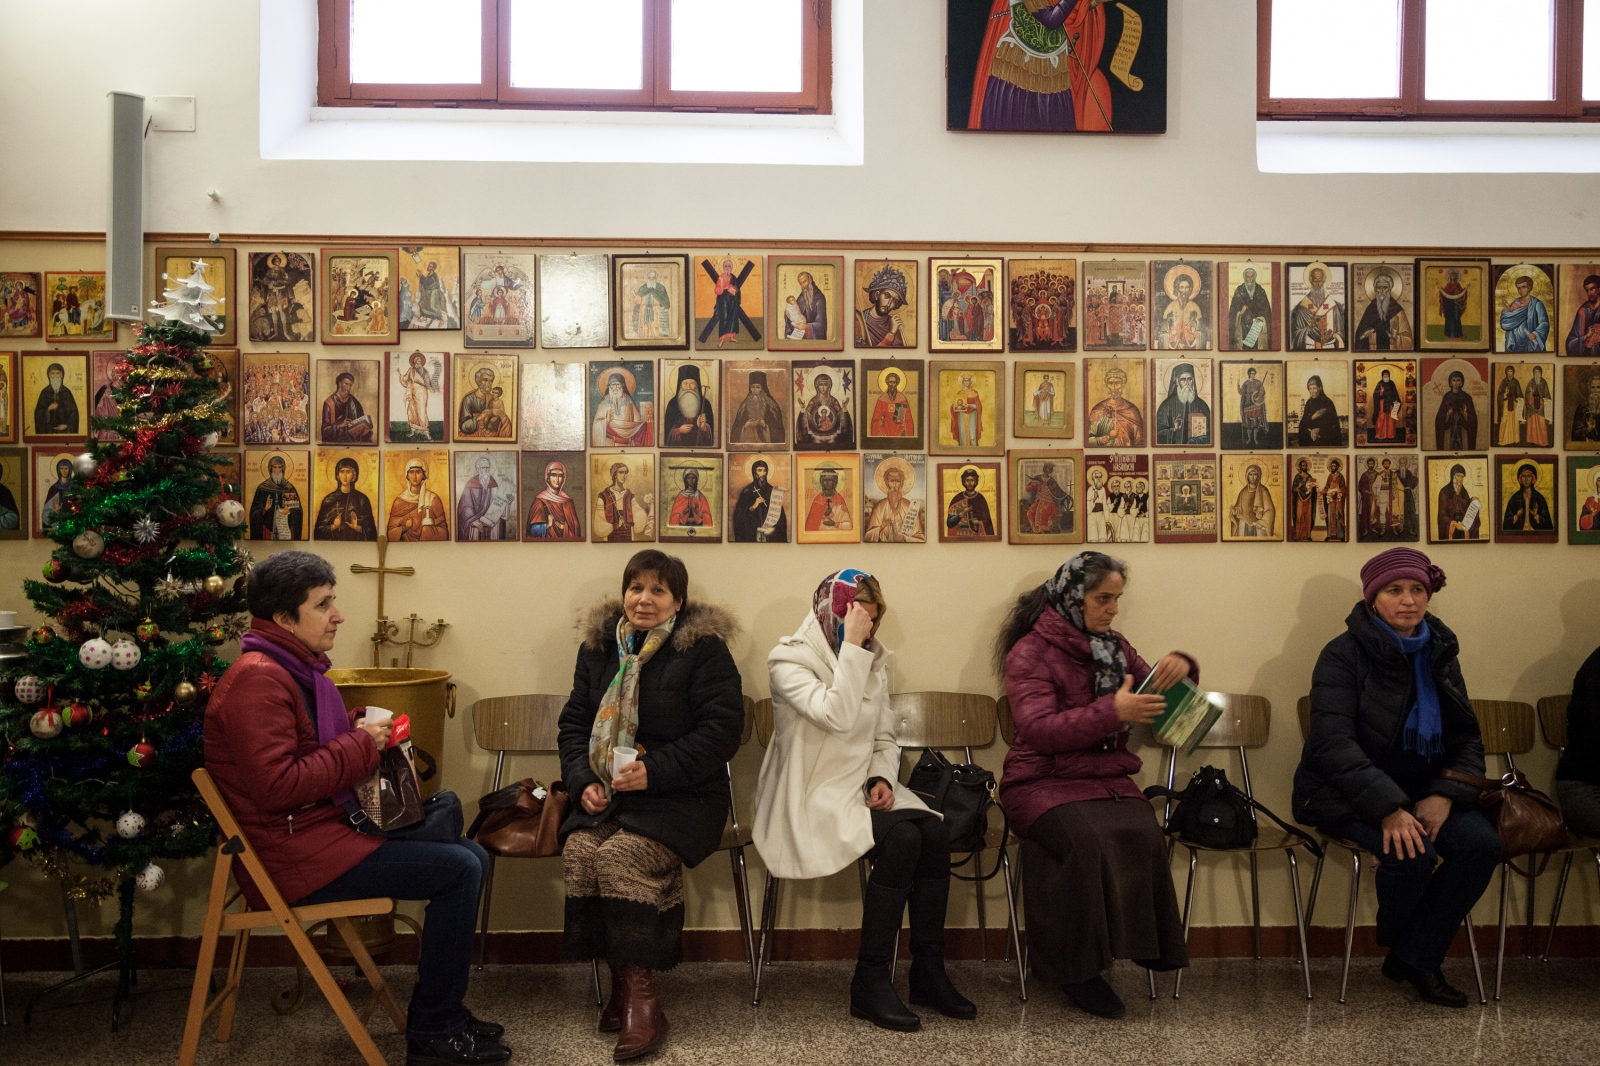 After Sunday celebration, some women sit in the Romanian Orthodox Church in Quadraro, a working class neighborhood in southeaster Rome.